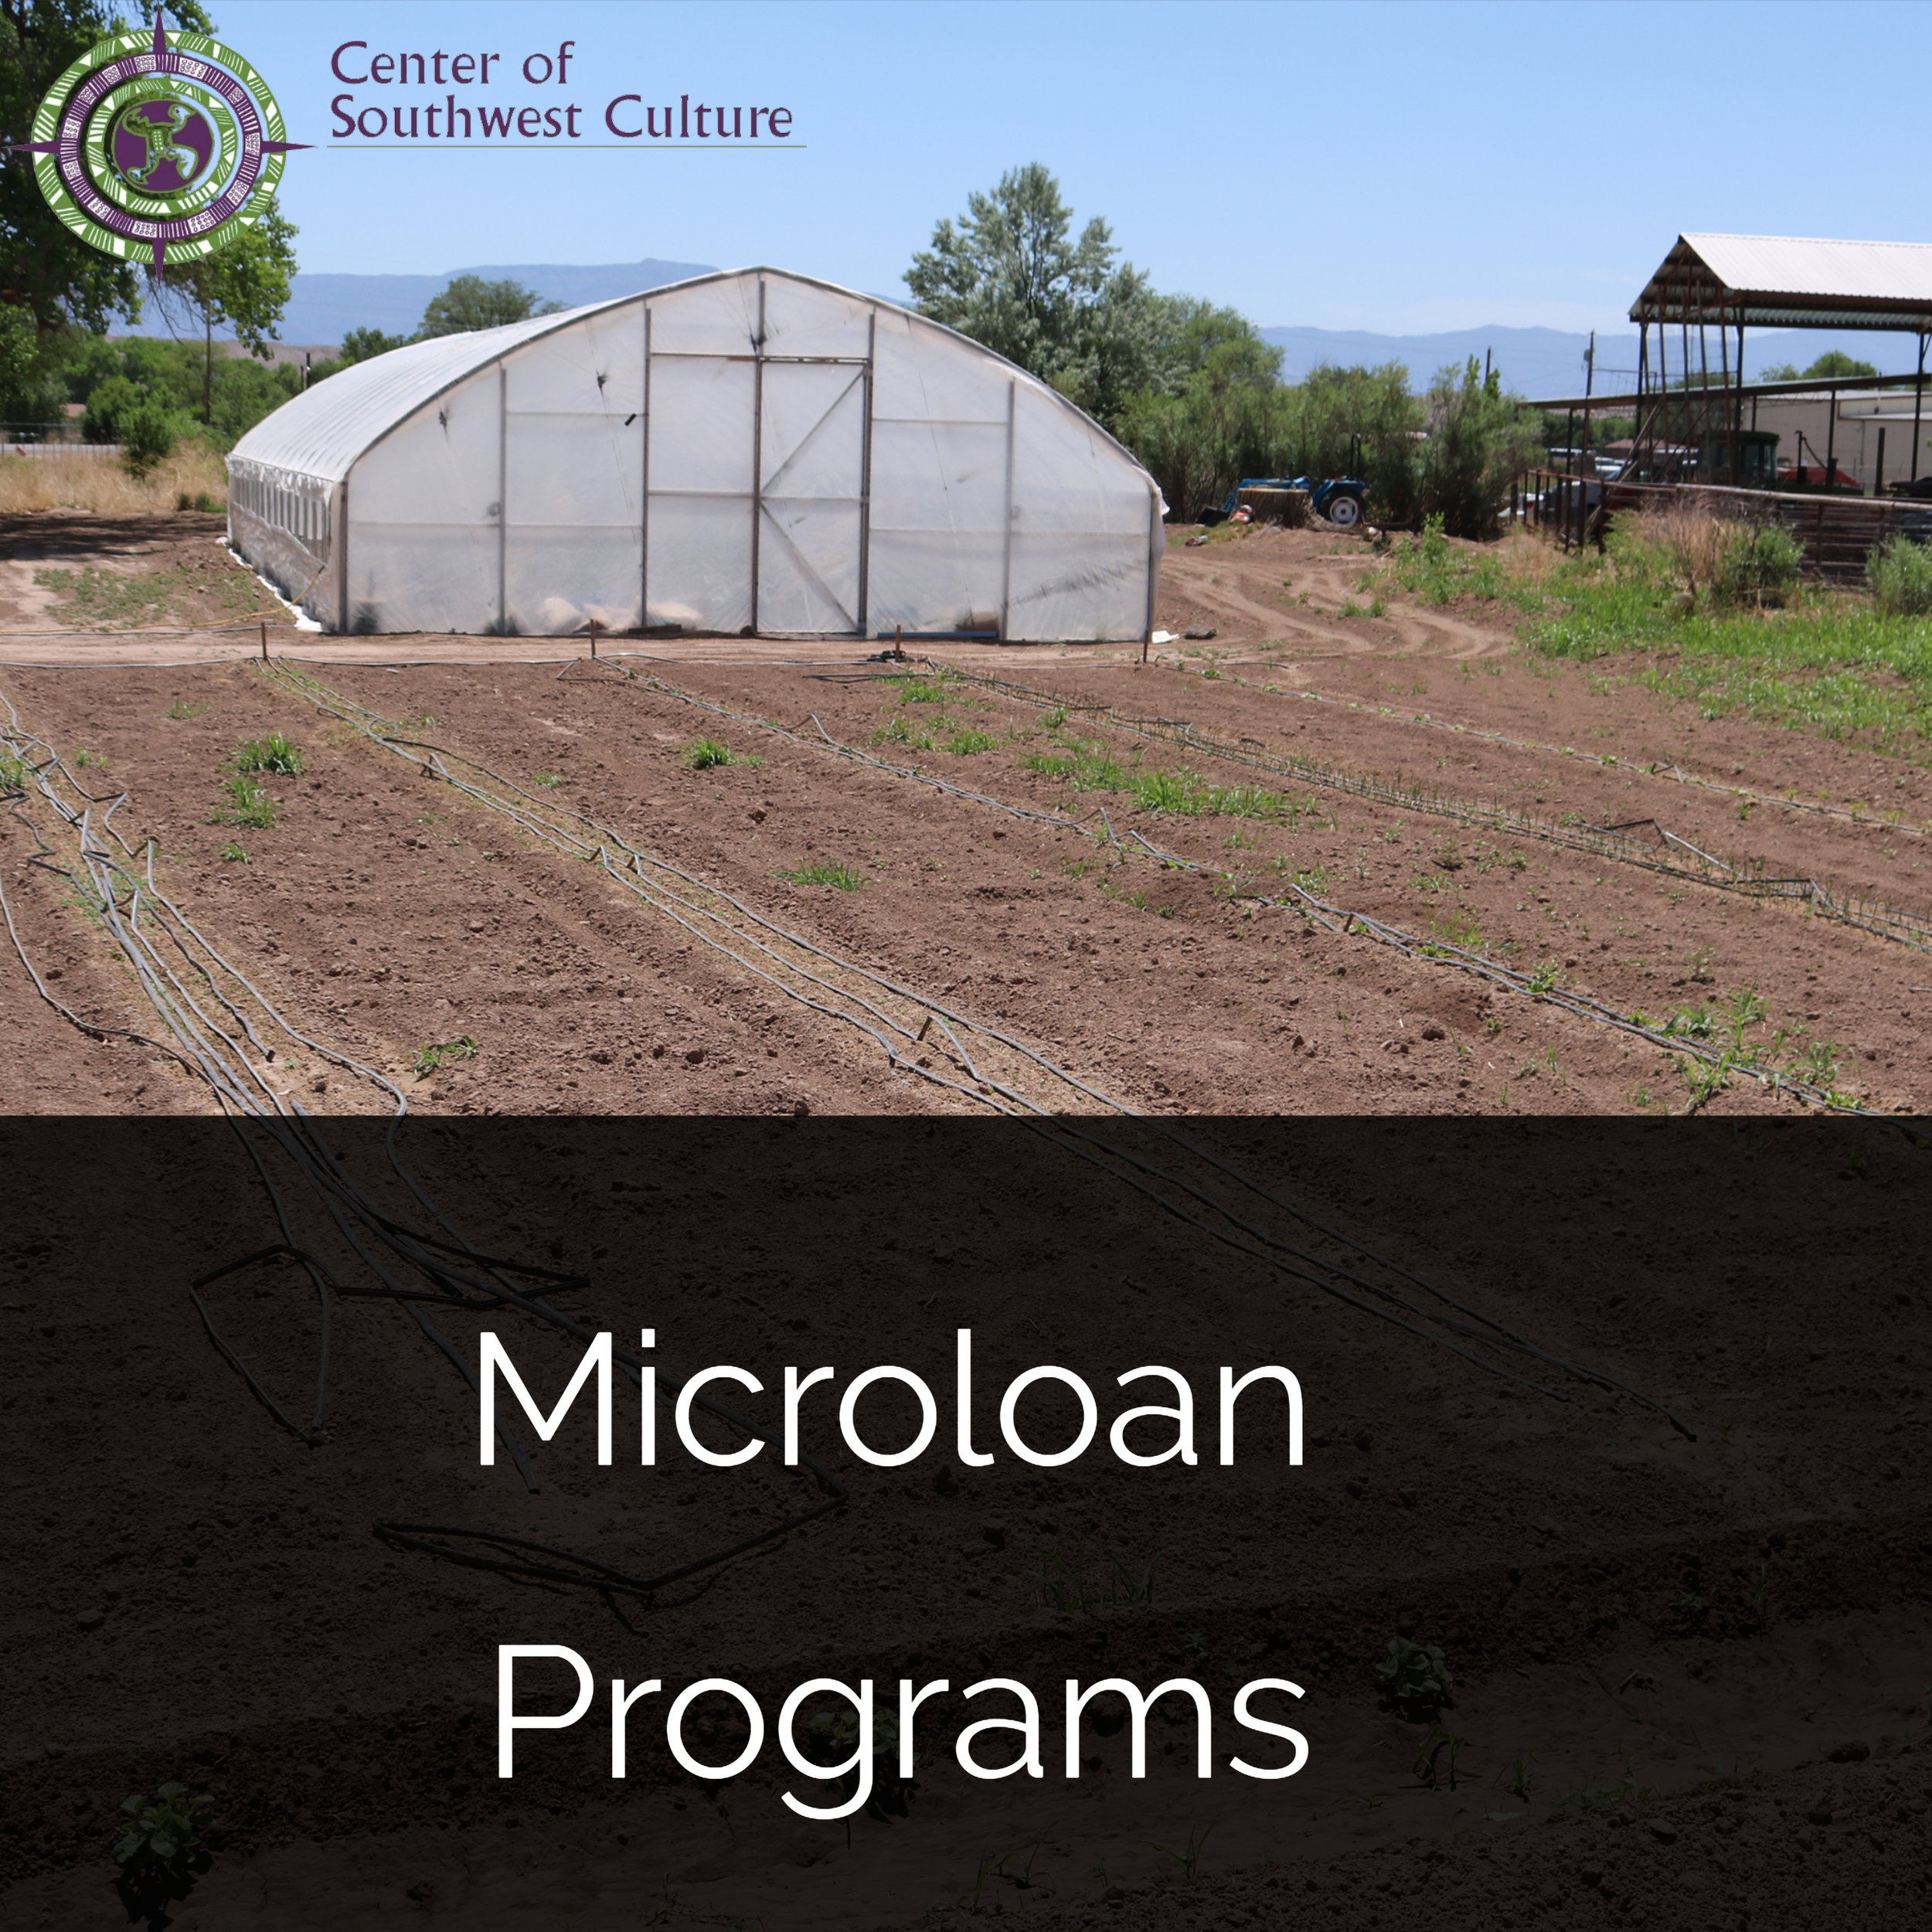 Microloan Programs - The focus of Microloans is on the financing needs of small, beginning farmers, niche and non-traditional farm operations, such as truck farms, farms participating in direct marketing and sales such as farmers' markets, CSA's (Community Supported Agriculture), restaurants and grocery stores, or those using hydroponic, aquaponics, organic and vertical growing methods.PDF information can be found here.